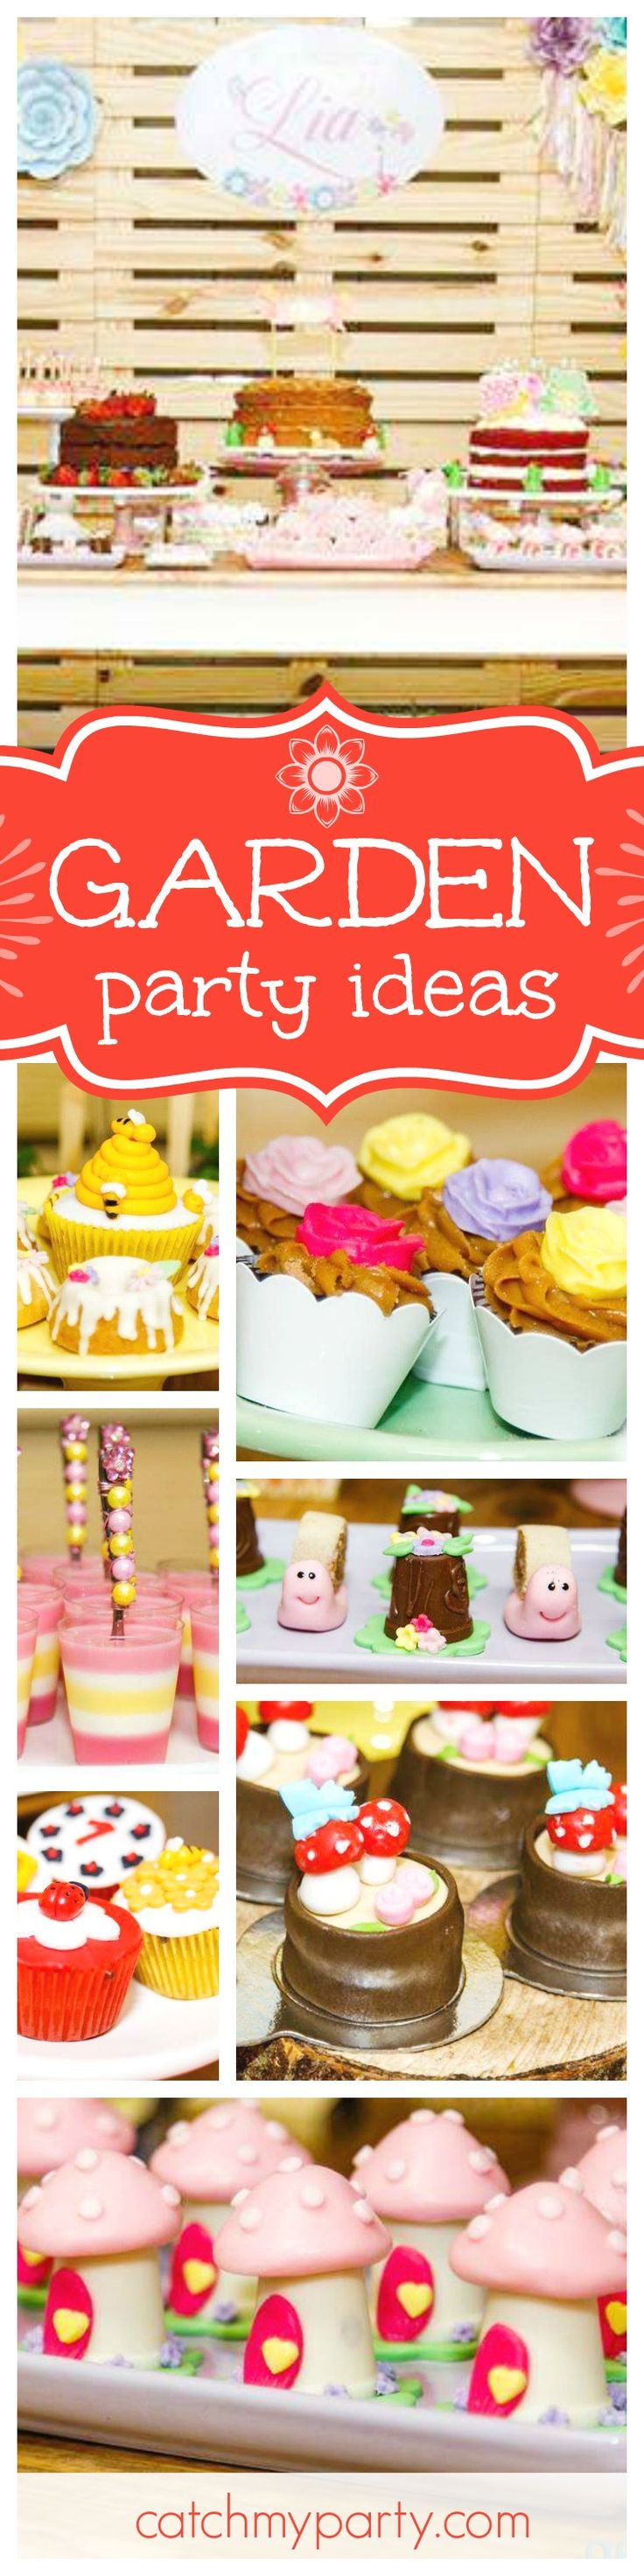 426 best images about Woodland Party Ideas on Pinterest